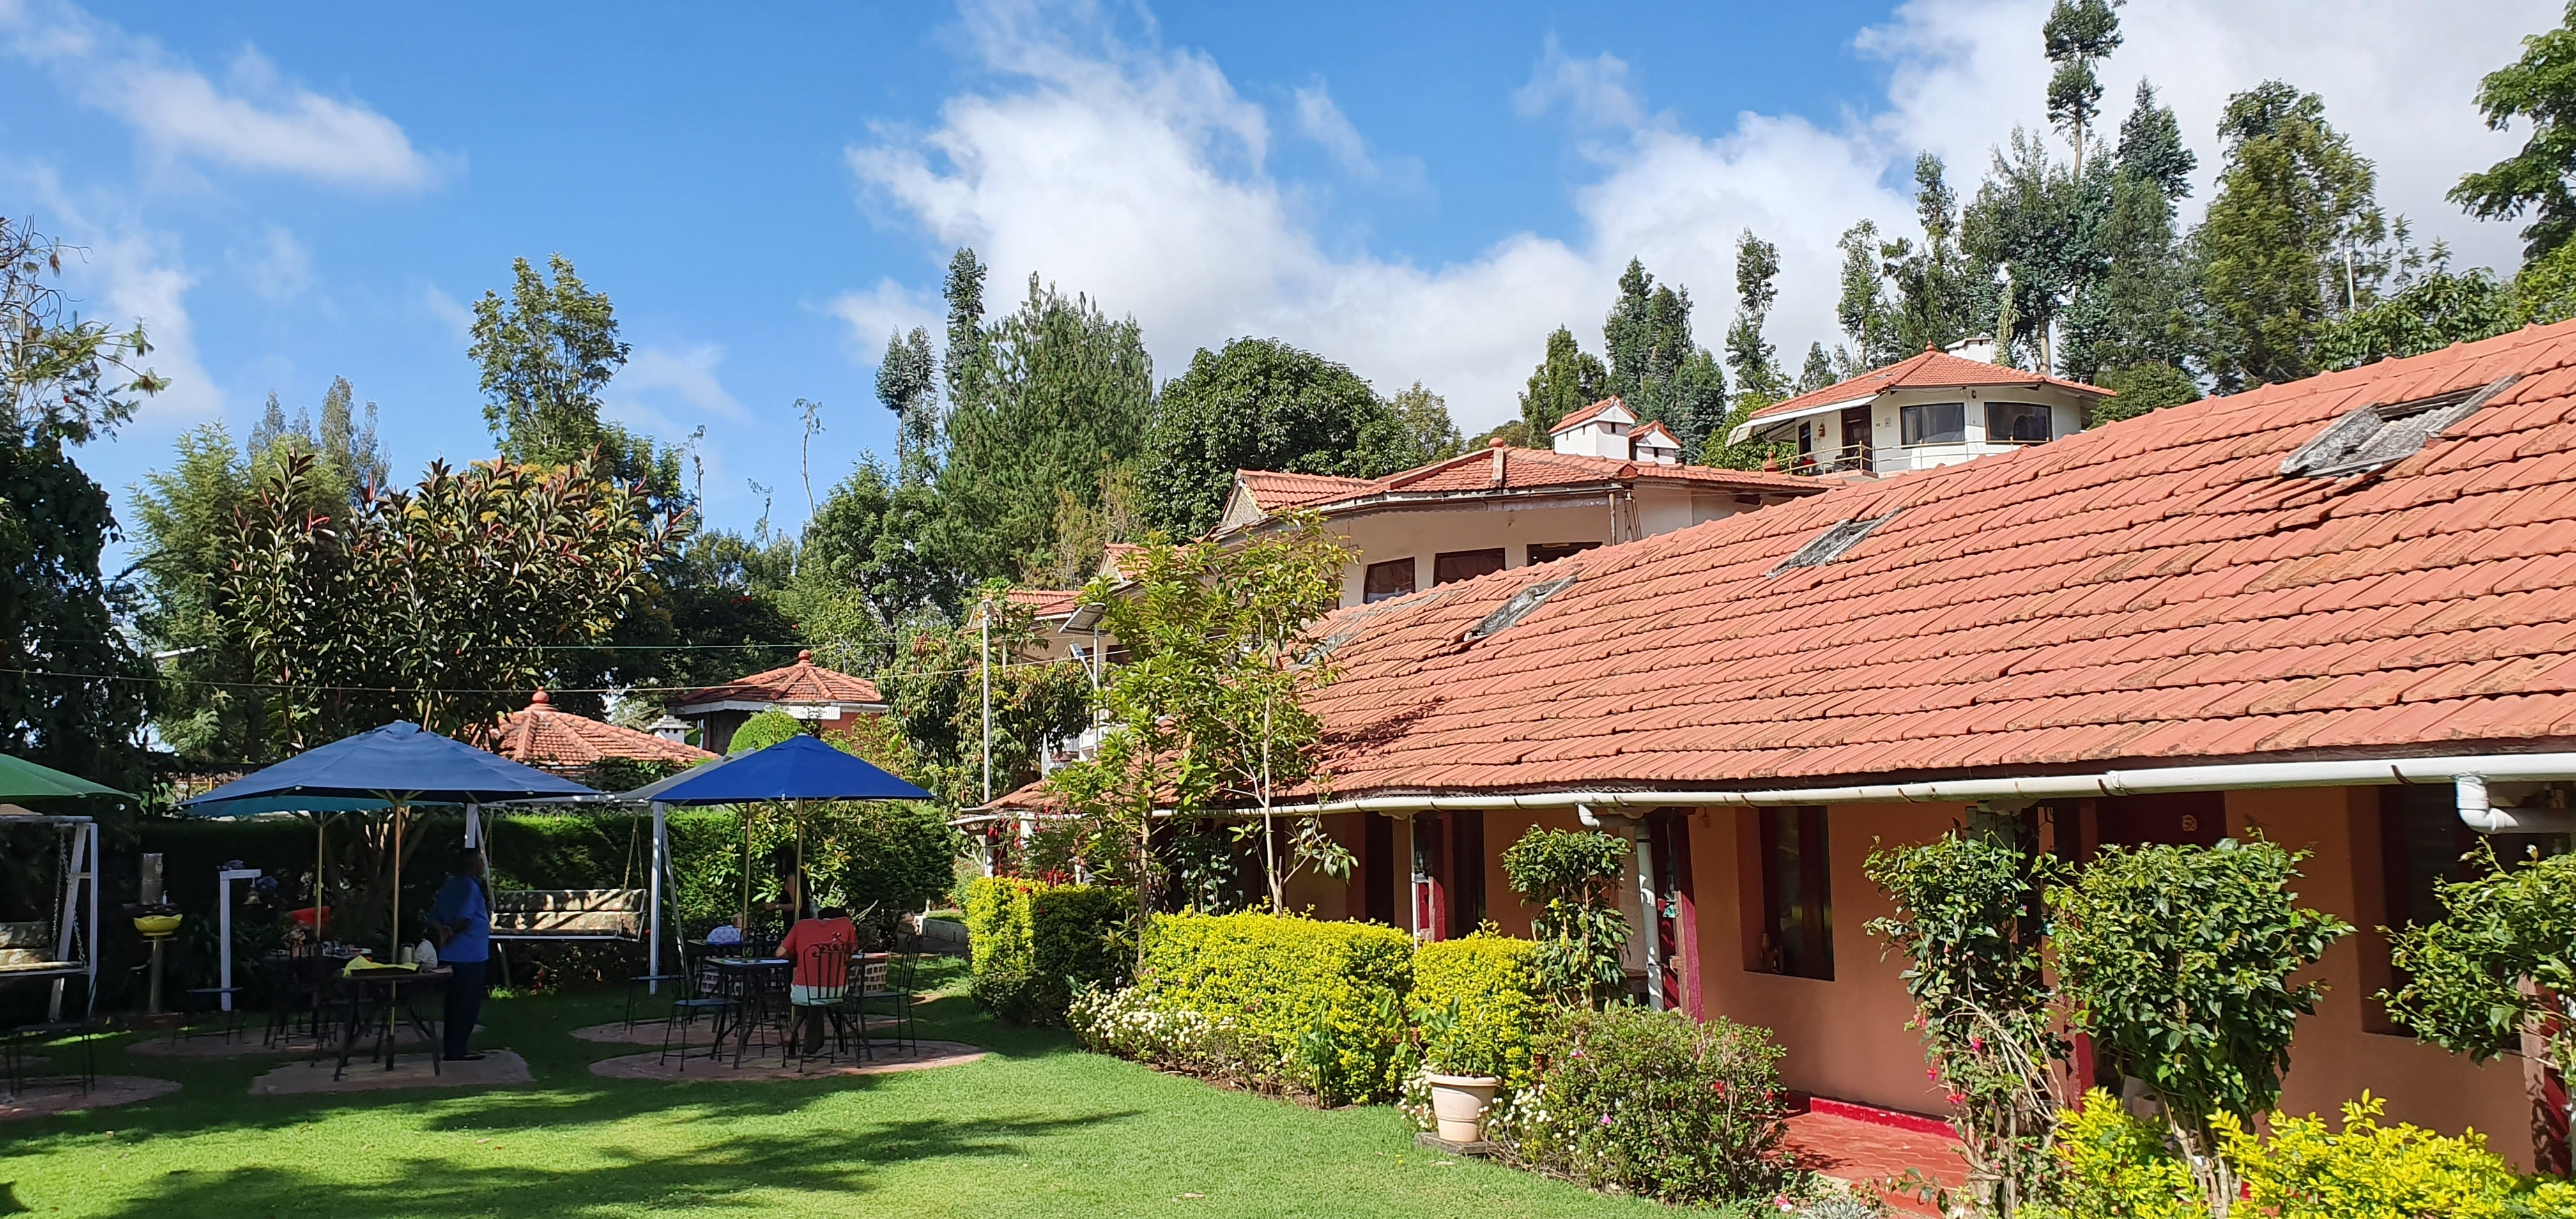 AYURVEDA REJUVENATION RETREAT IN BLUE MOUNTAINS - SOUL EARTH